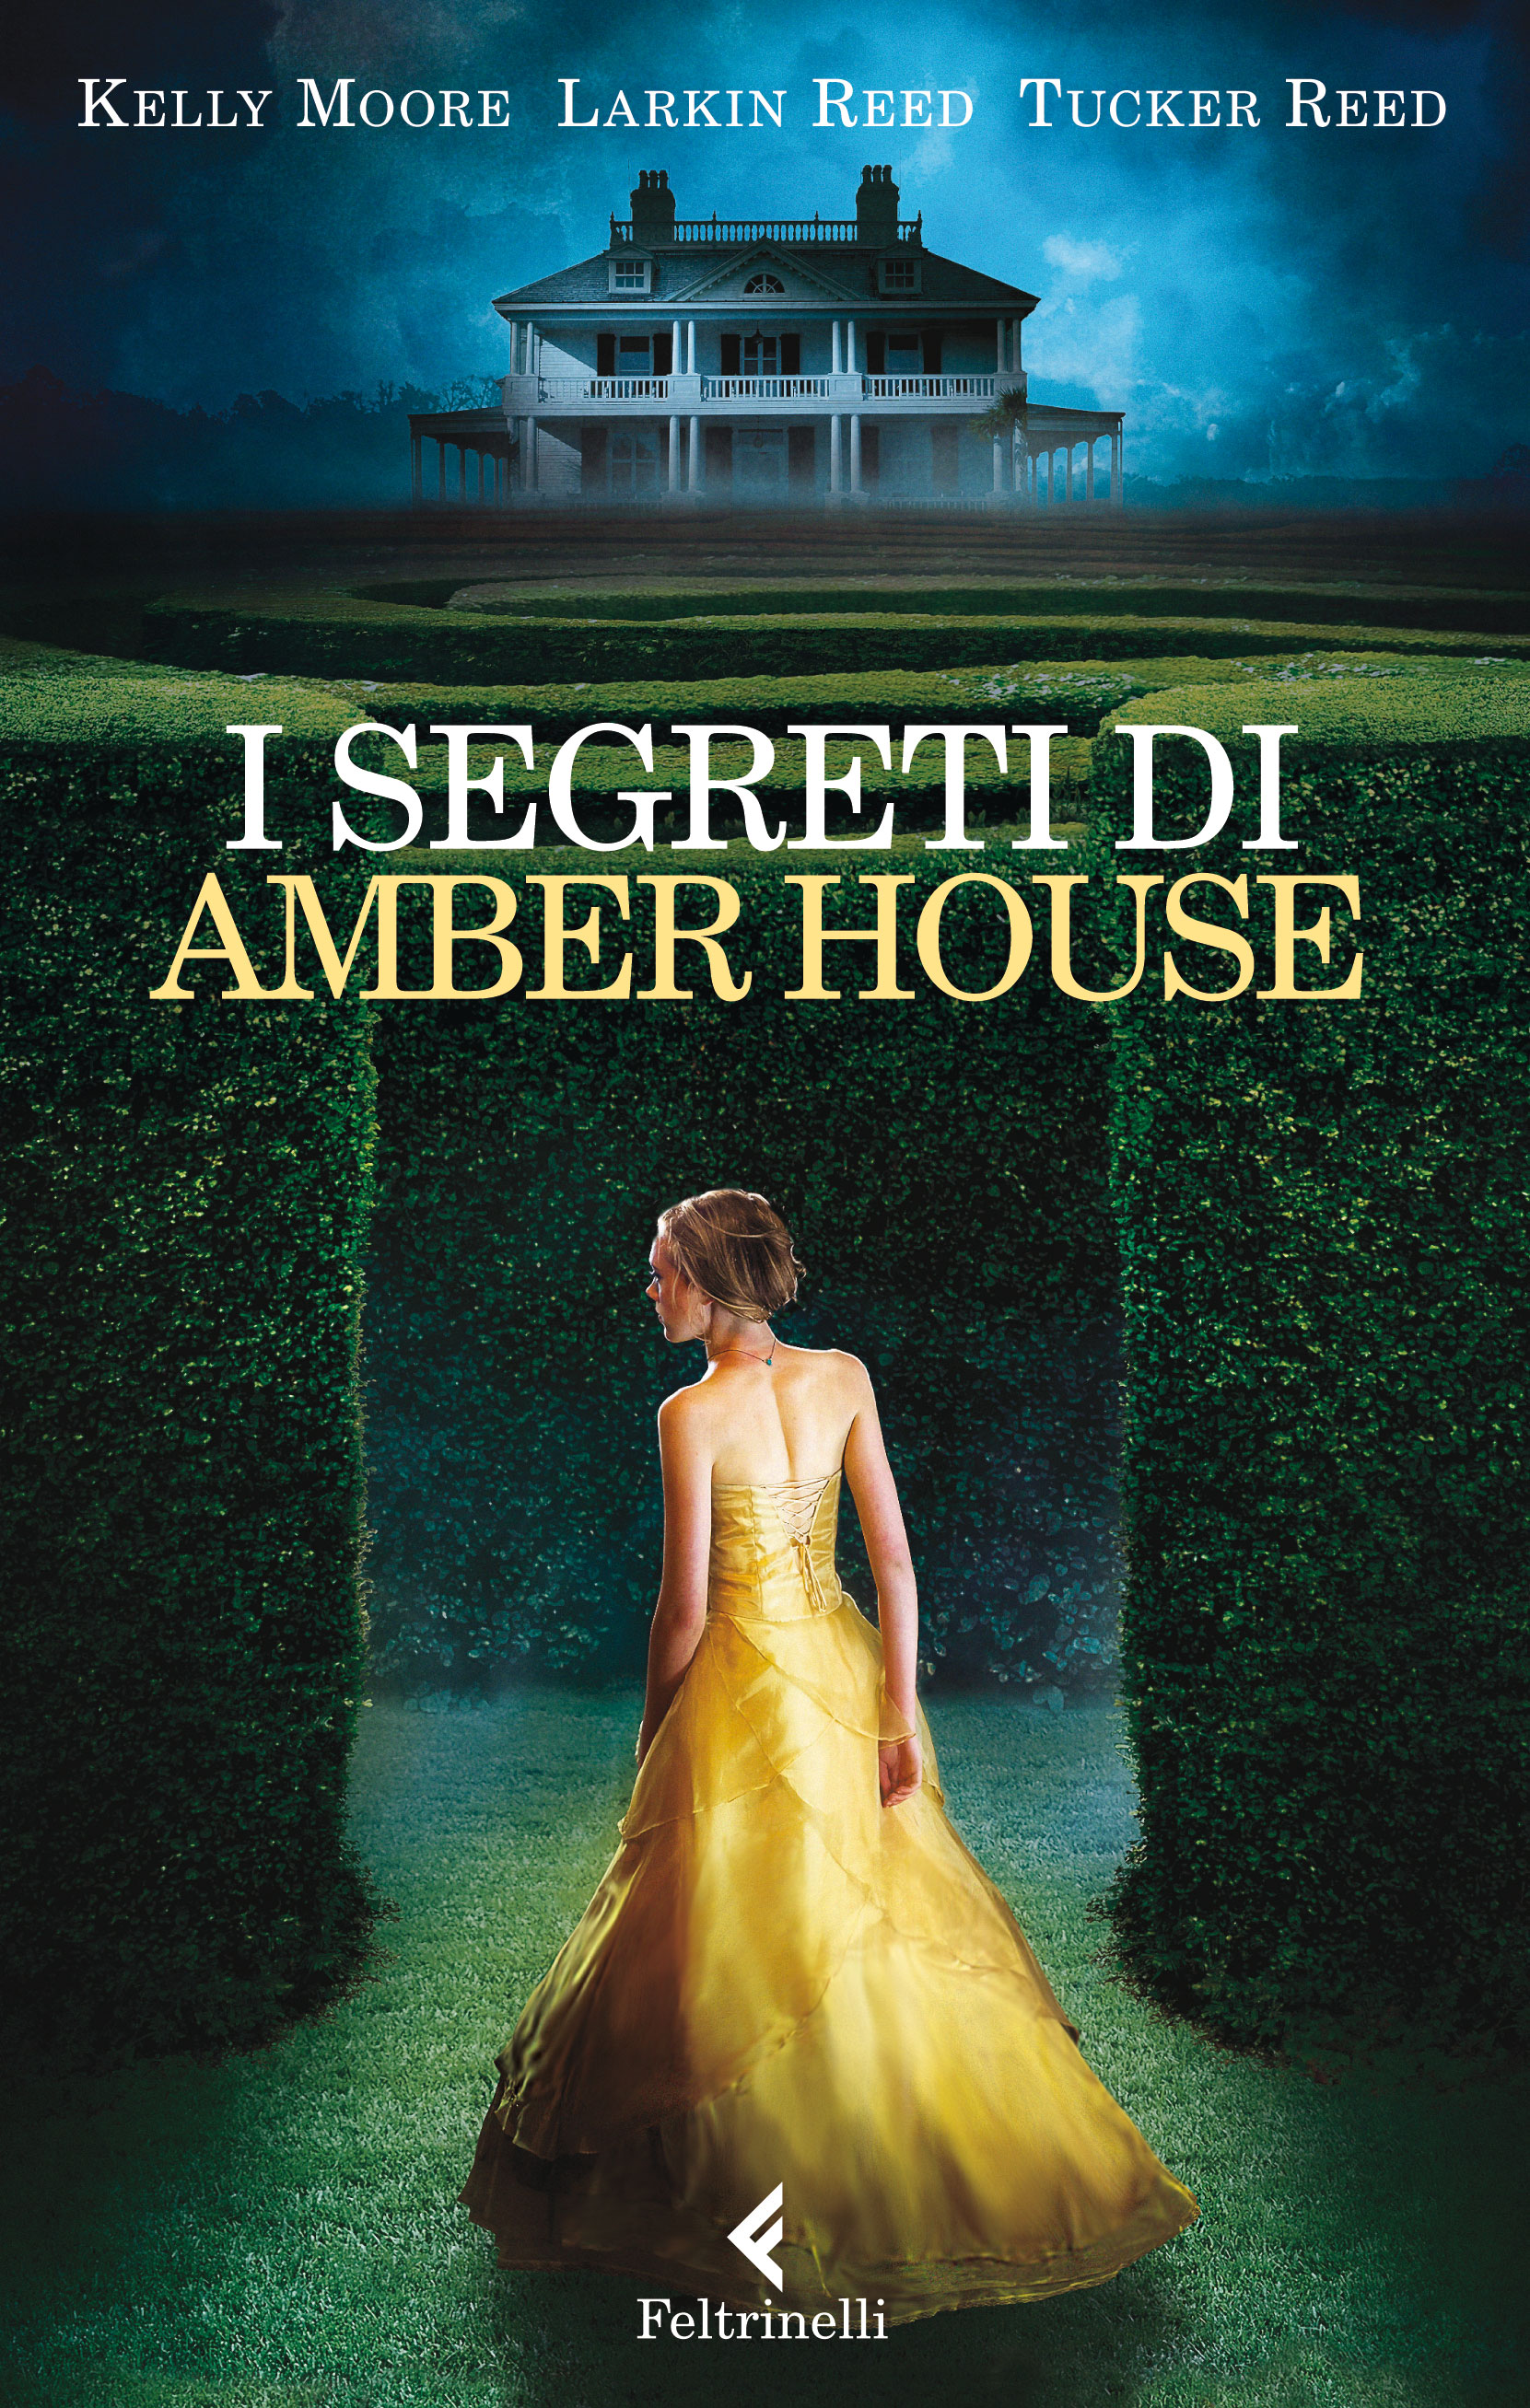 http://thebooklovernargles.blogspot.it/2014/06/recensione-i-segreti-di-amber-house-di.html